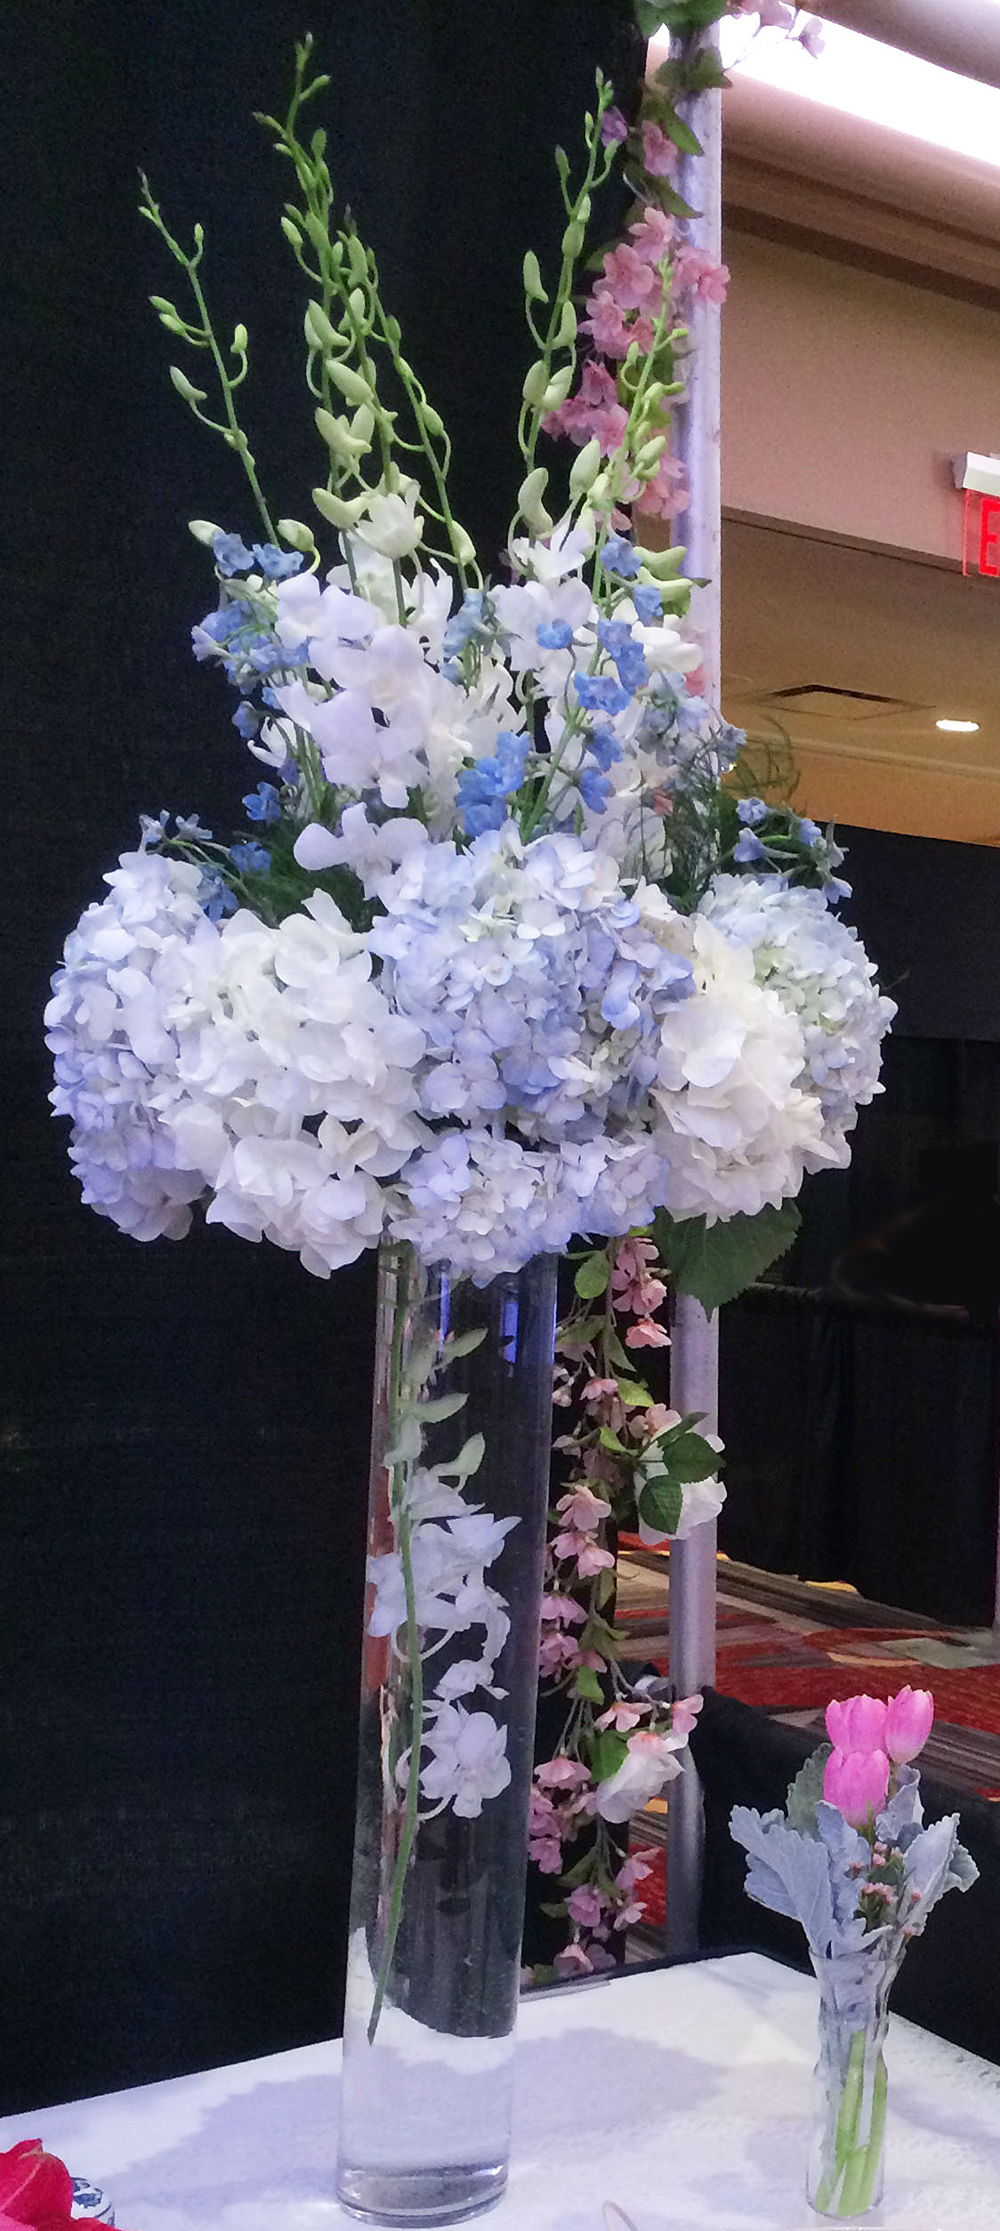 Evelisa Floral & Design's Tall Blue & White arrangement